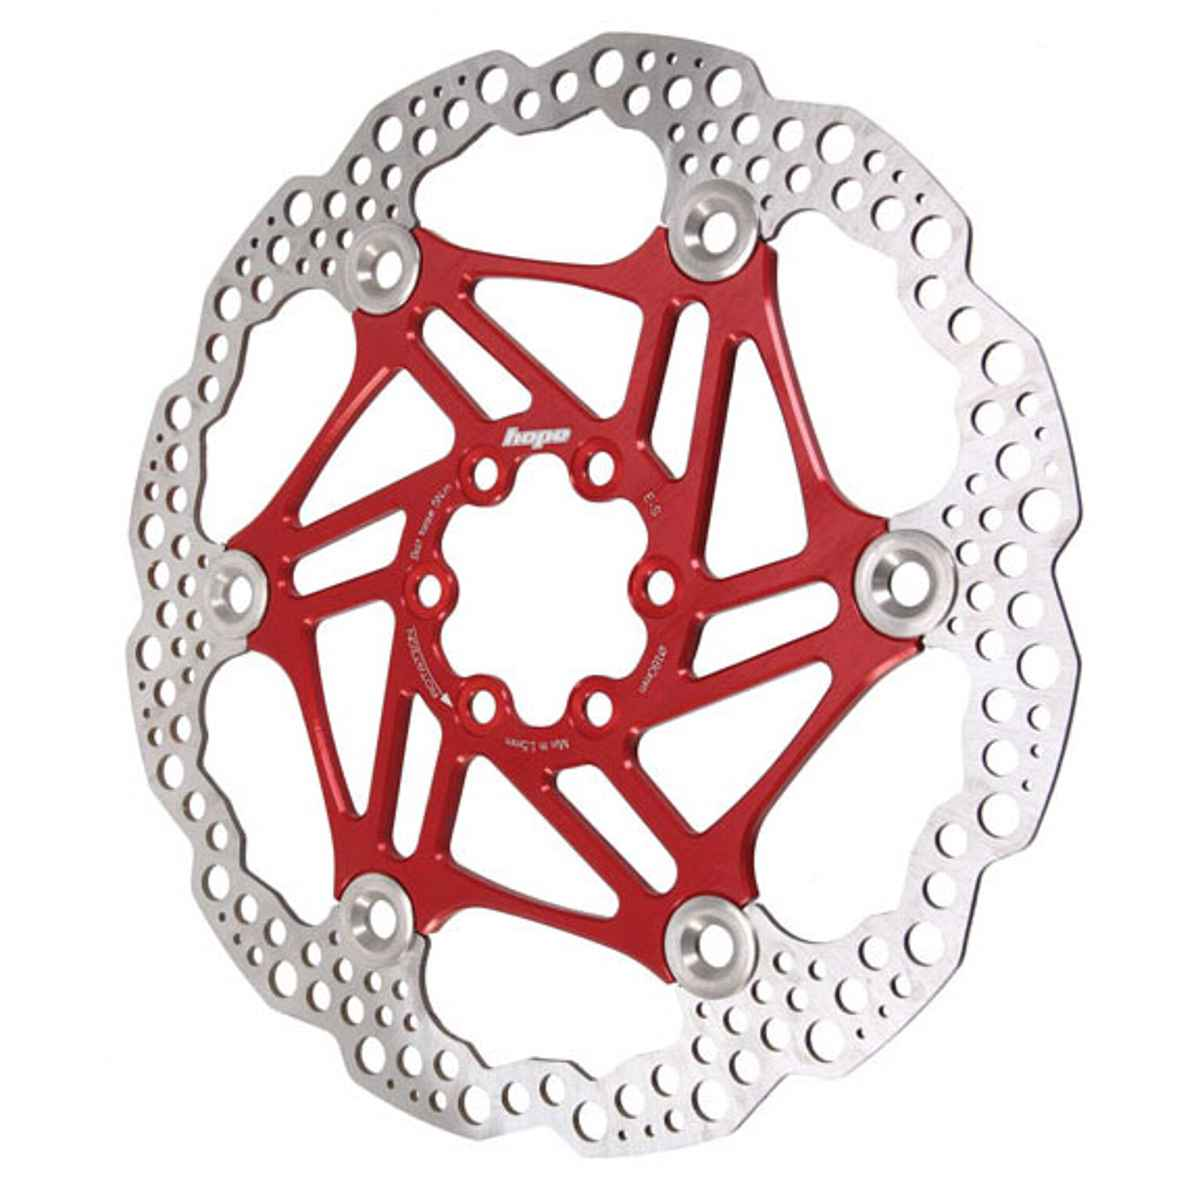 Hope Floating rotor, 200mm (floating/wave) - red - HBSP3302006FR